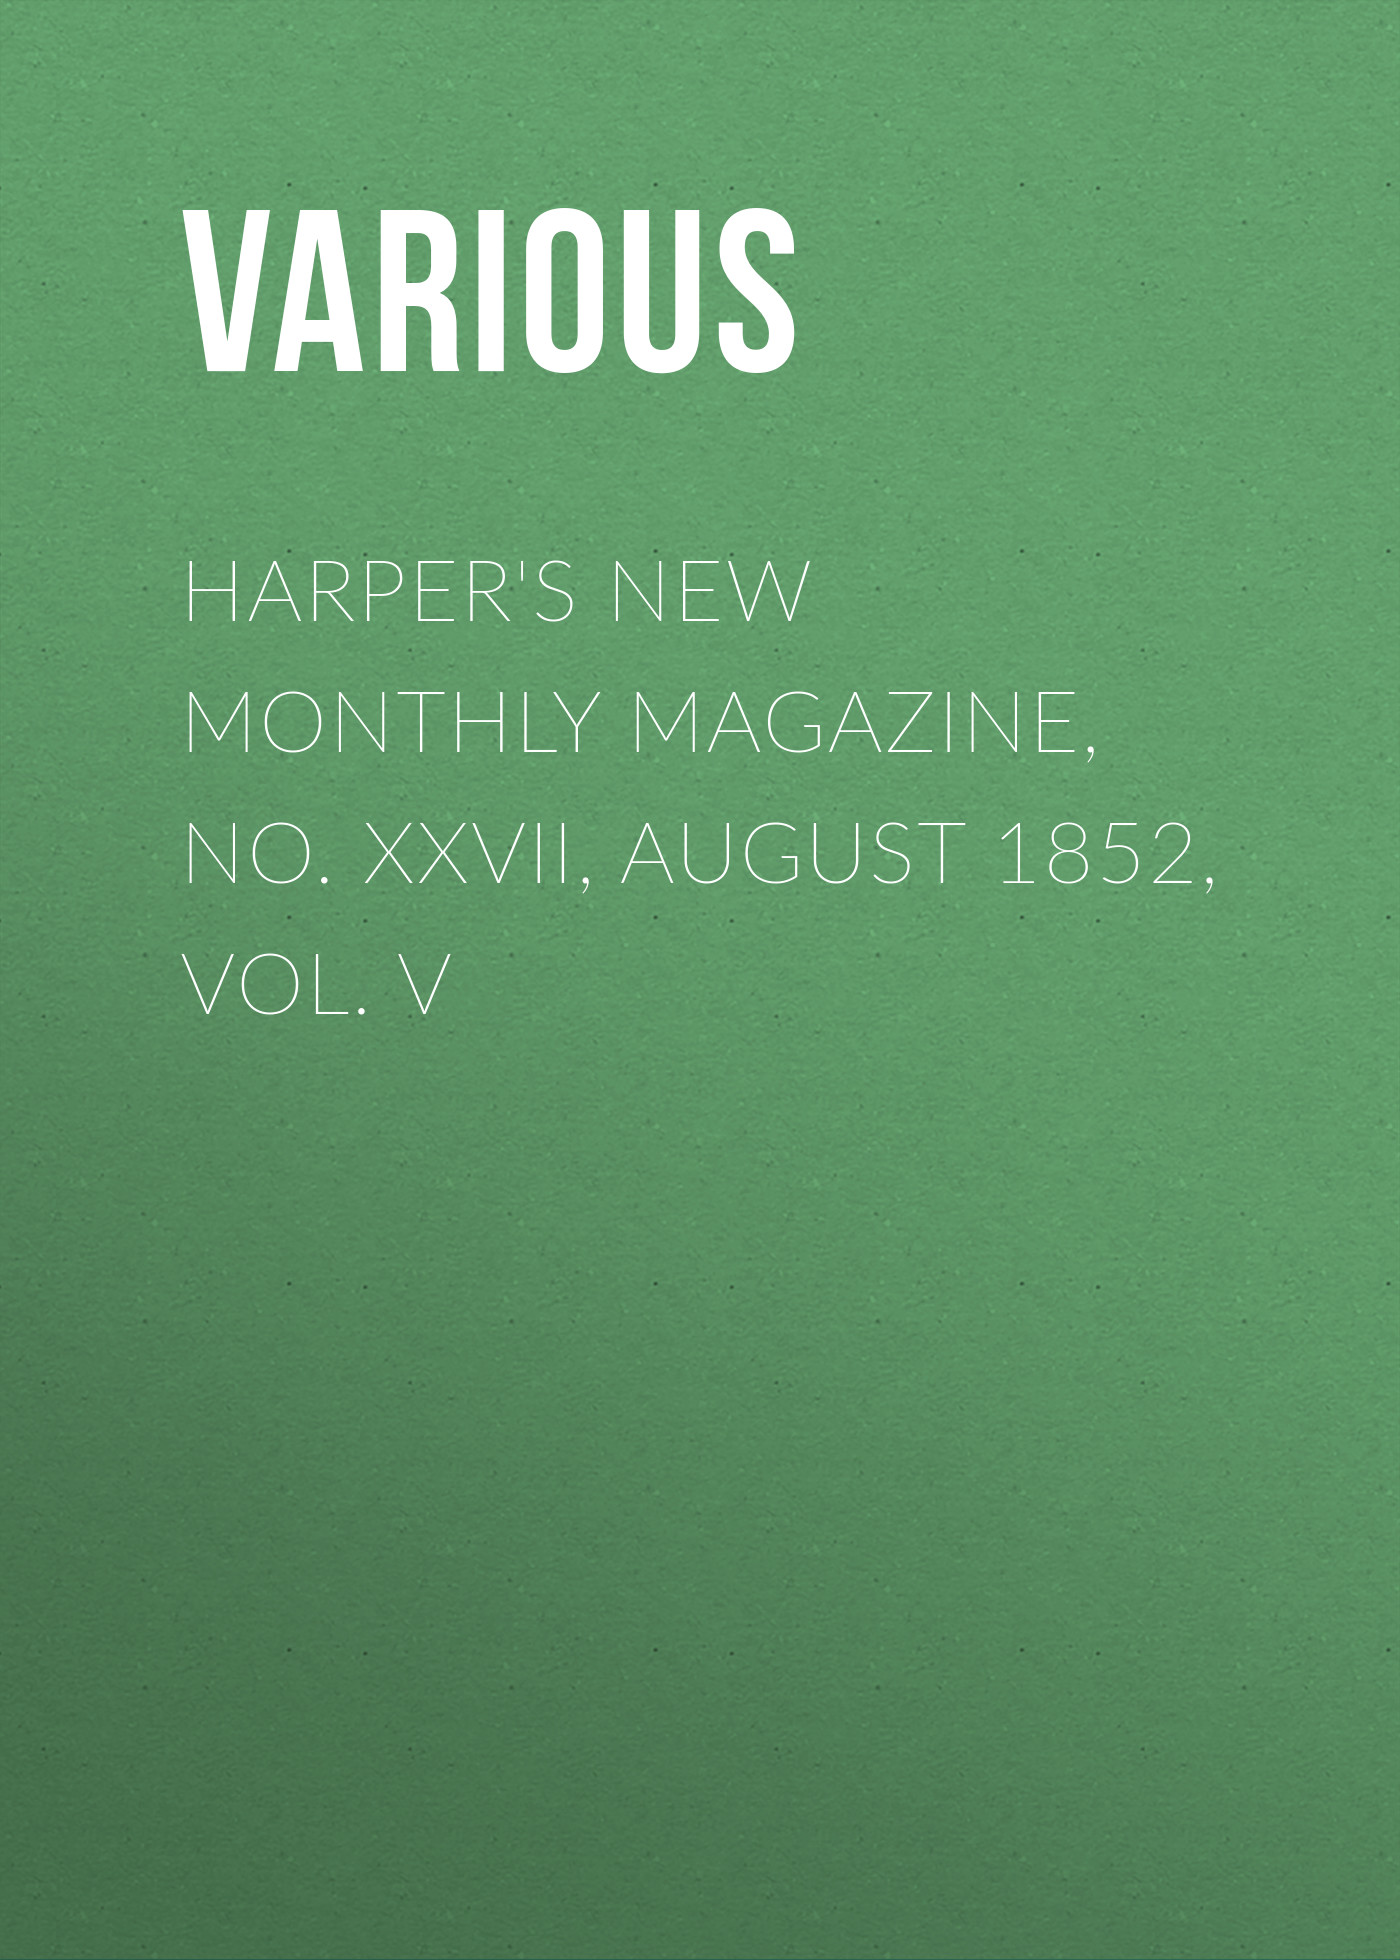 Фото - Various Harper's New Monthly Magazine, No. XXVII, August 1852, Vol. V various harper s new monthly magazine no xxiii april 1852 vol iv